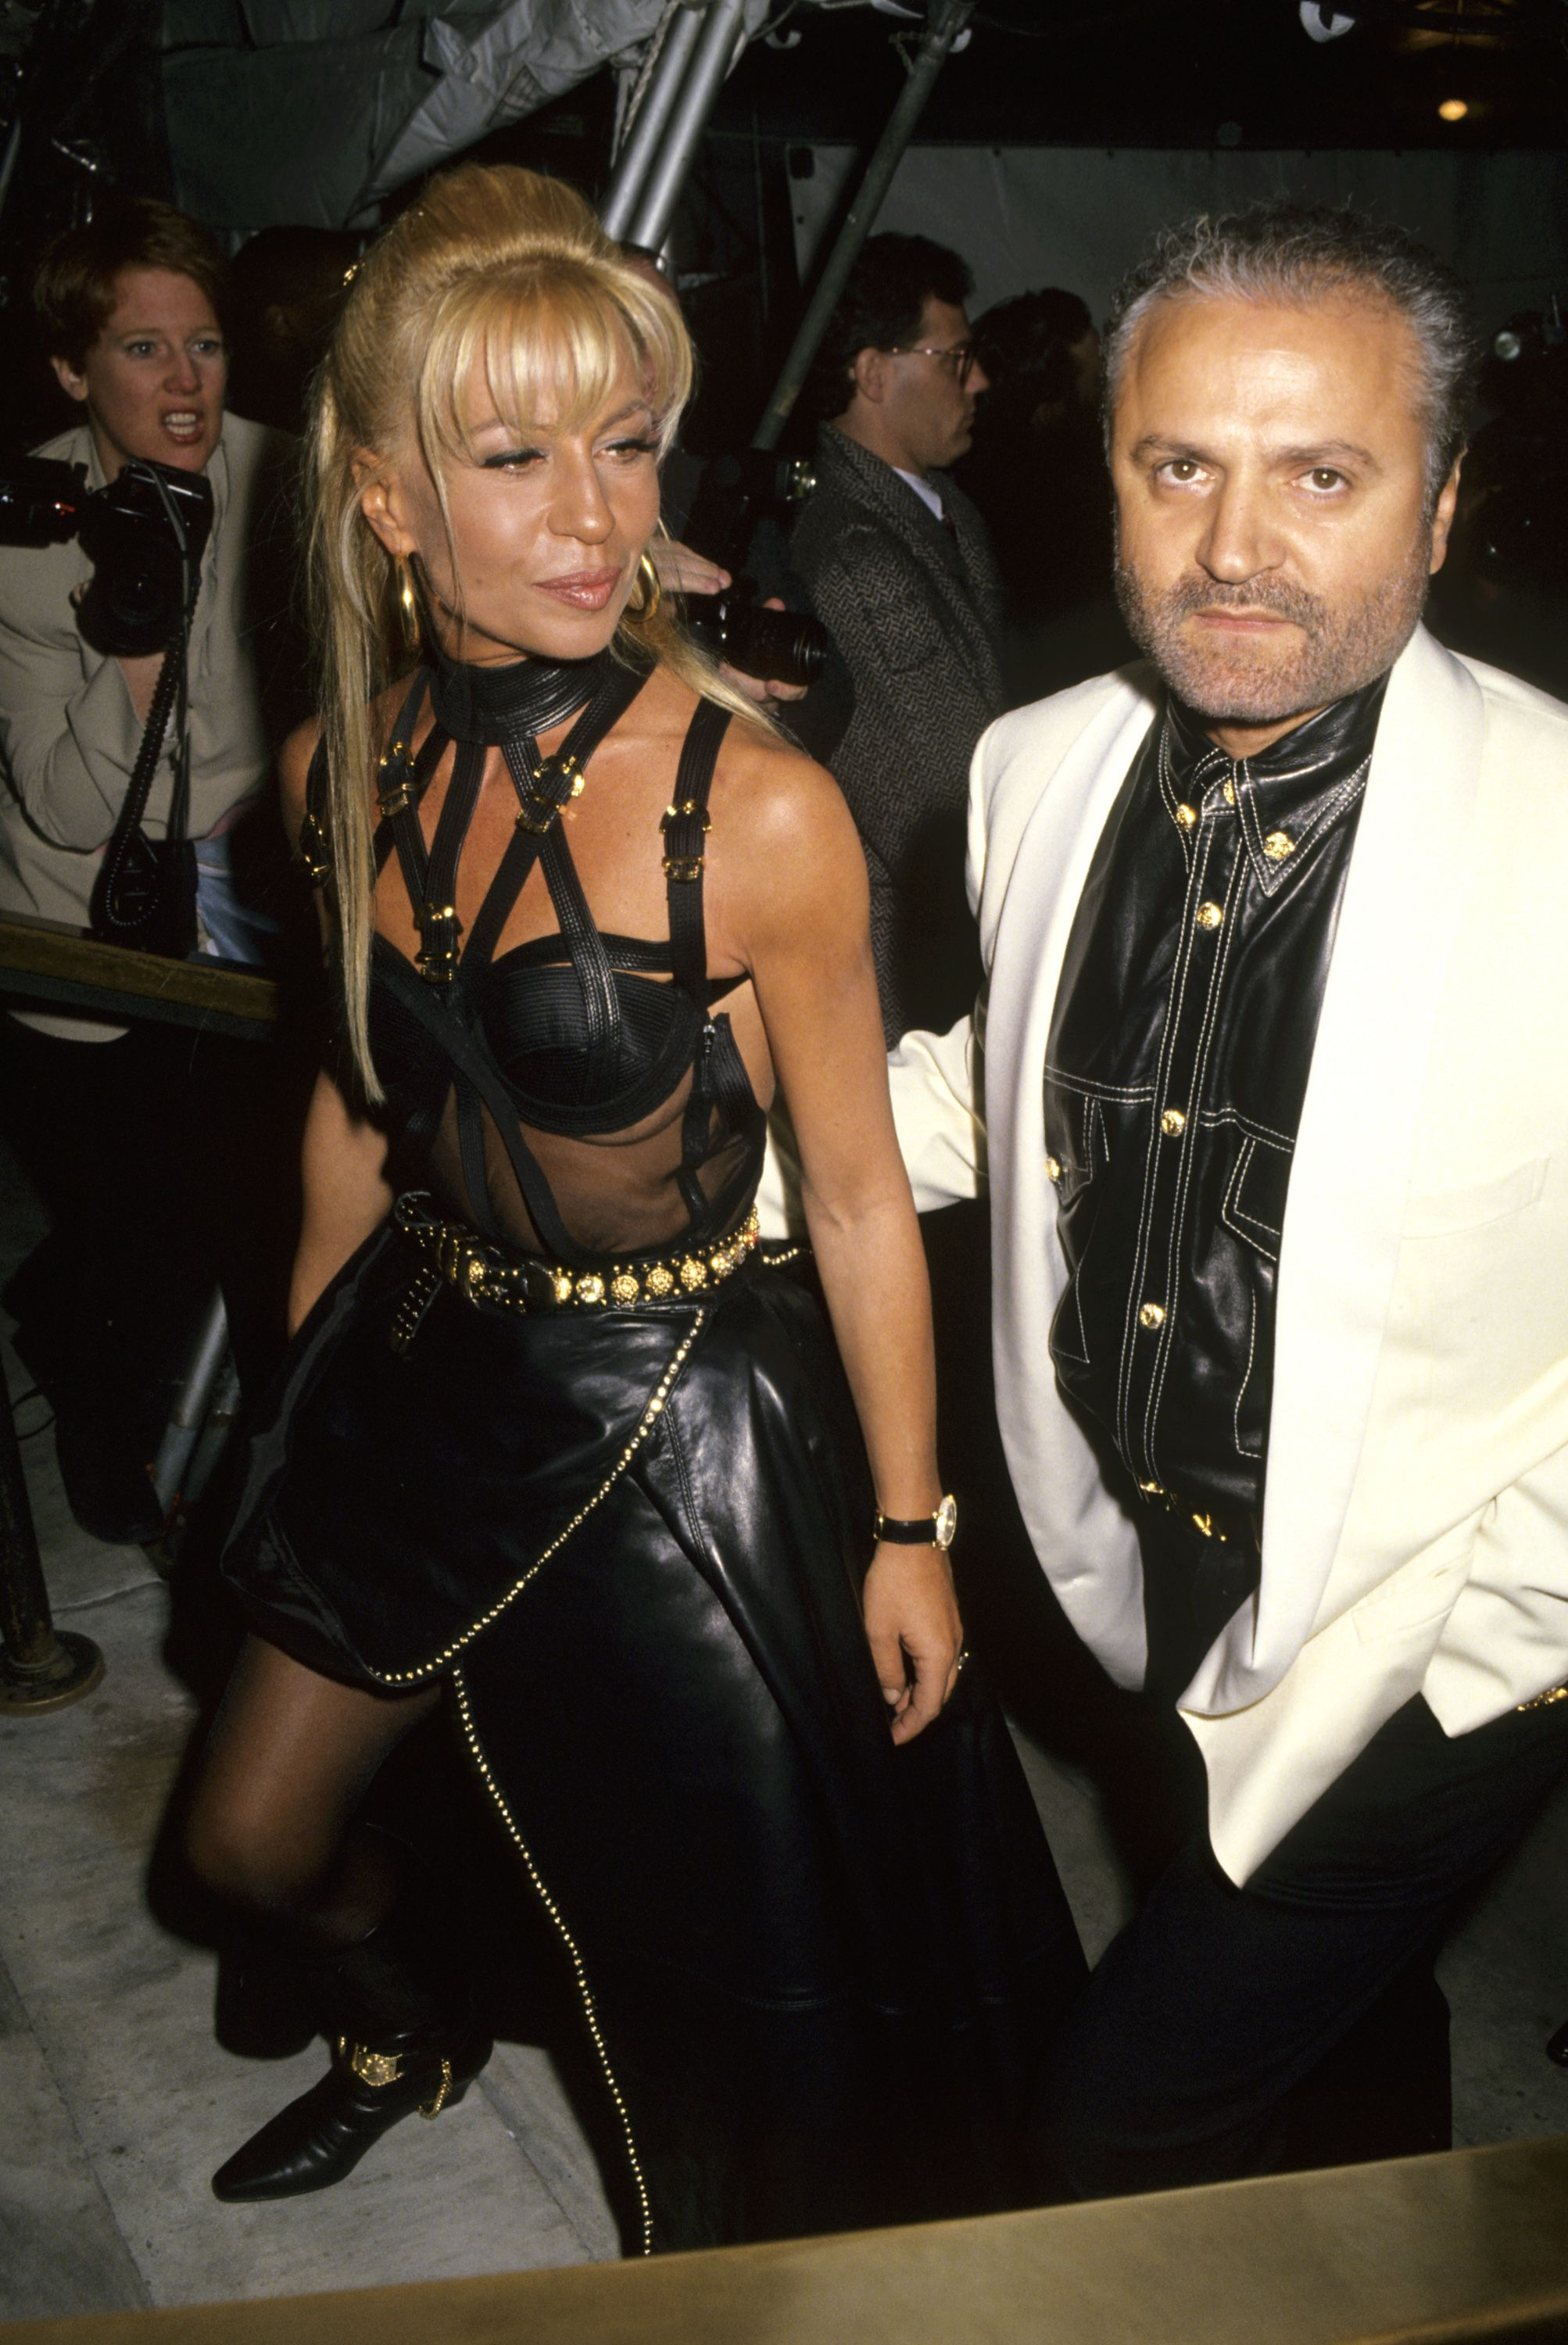 Best Dresses 20 Gianni Most Iconic Of The Versace's Vintage 4R5jAL